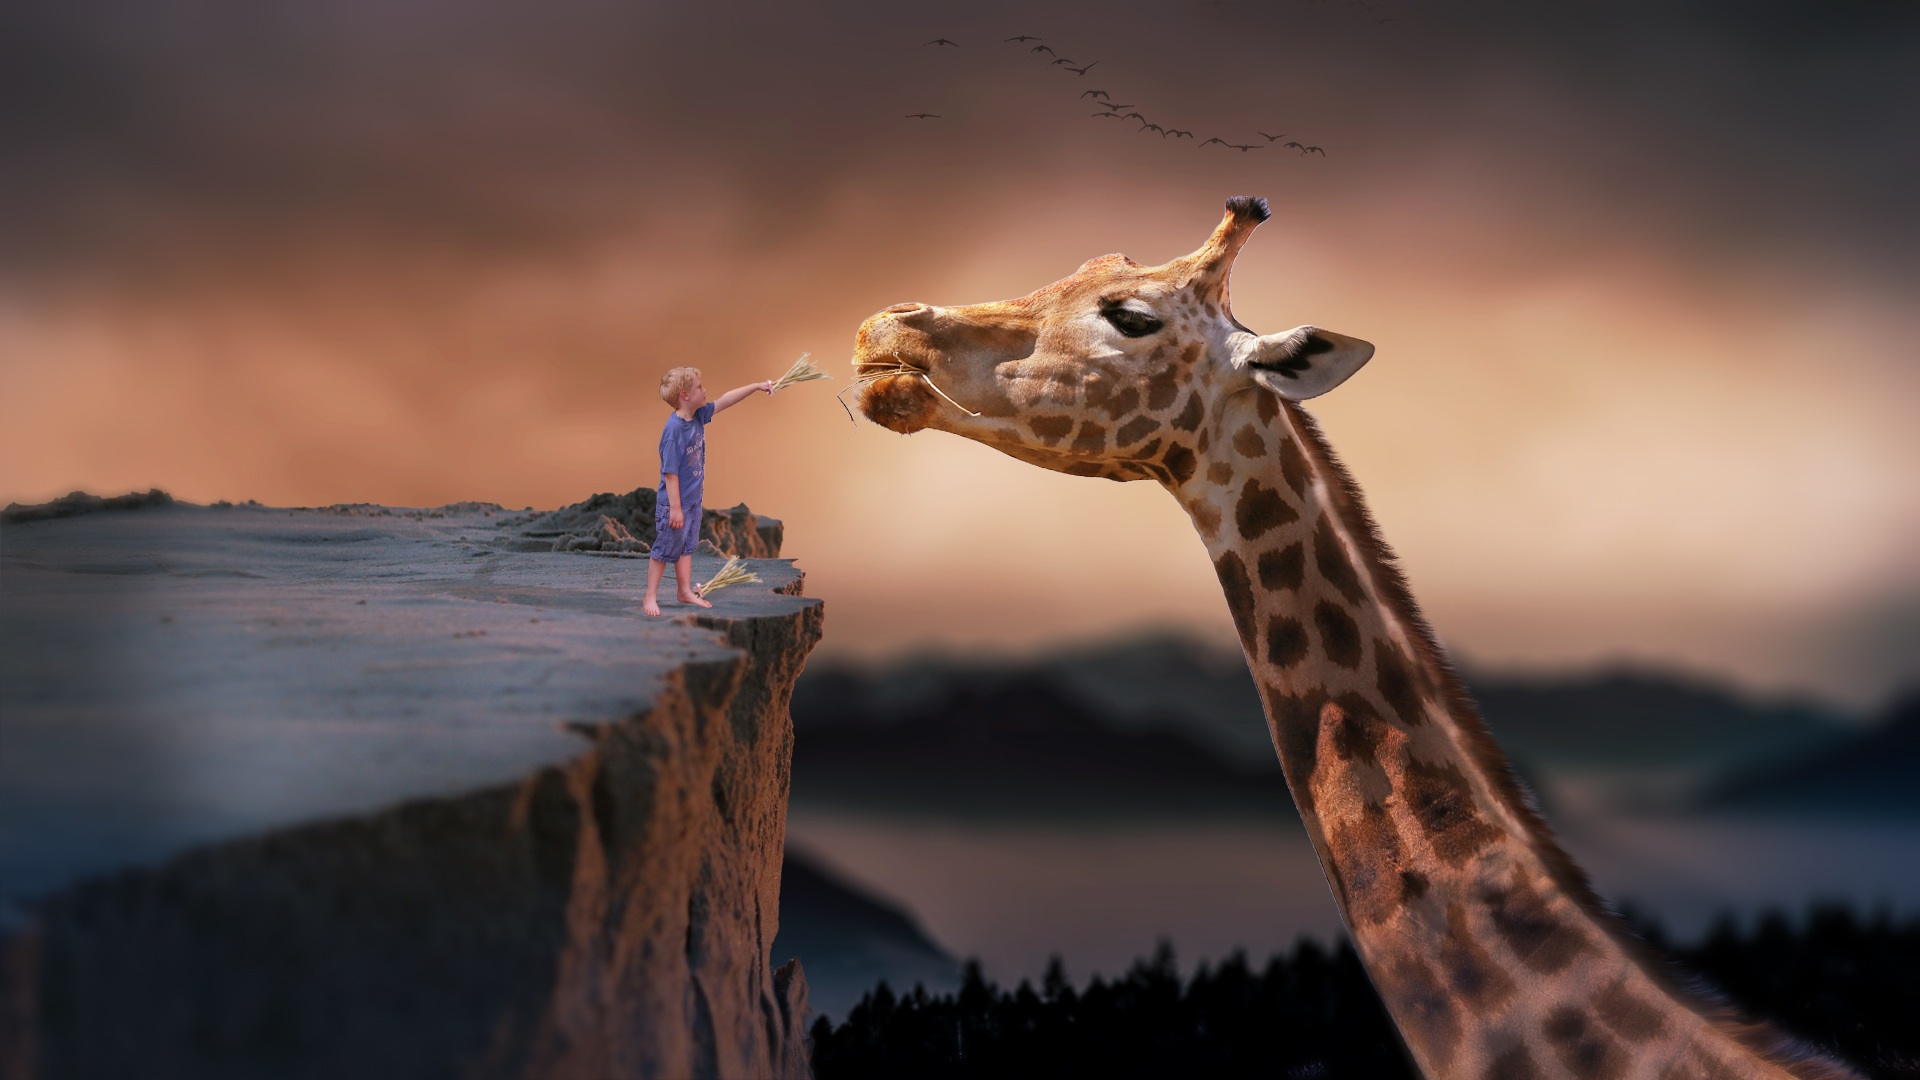 Boy feeding giraffe 54470